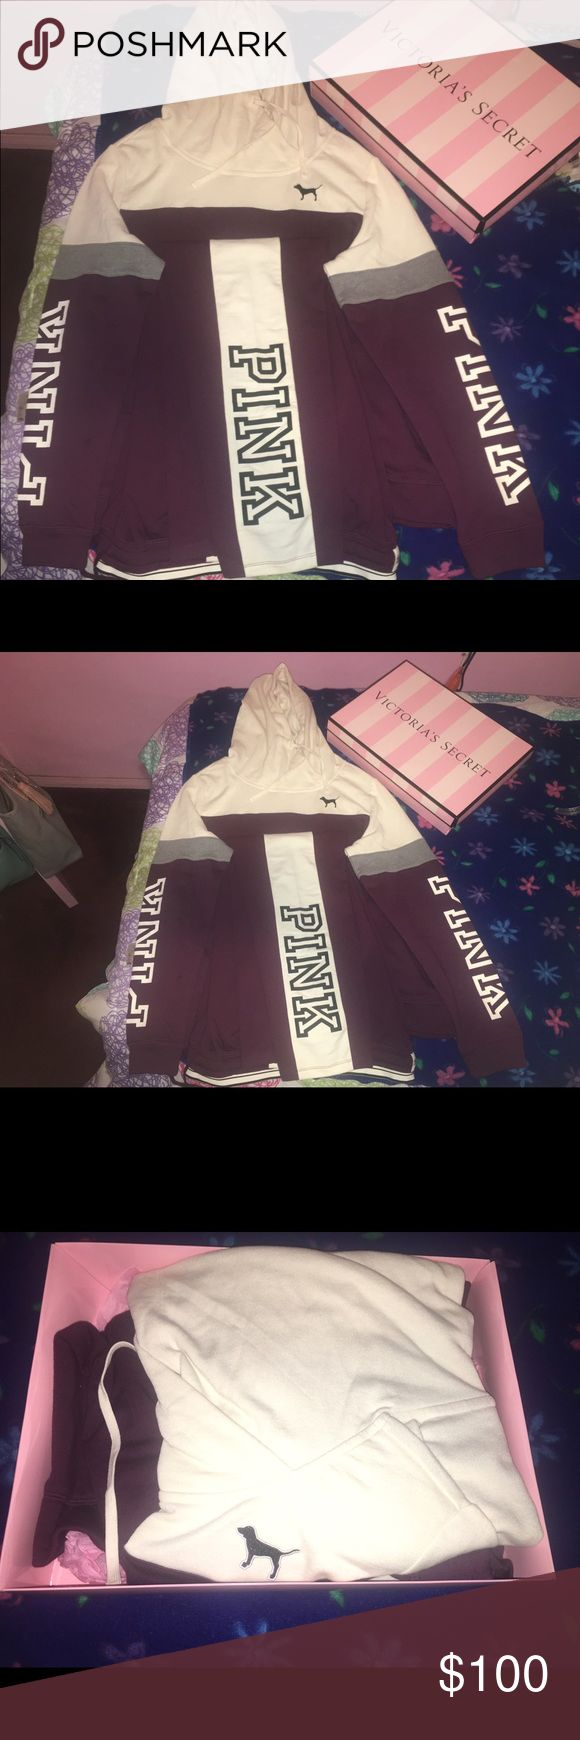 Victoria's Secret/PINK matching hoodie and pants. My items are a matching Black Orchid (burgundy) and off white hoodie and pants by PINK from Victoria Secret. Both the pants and hoodie are a size Large. I purchased the set in Christmas of 2016 and it has not been worn. If you'd like to purchase, please message me on Instagram @infamoussimmone__ PINK Victoria's Secret Other